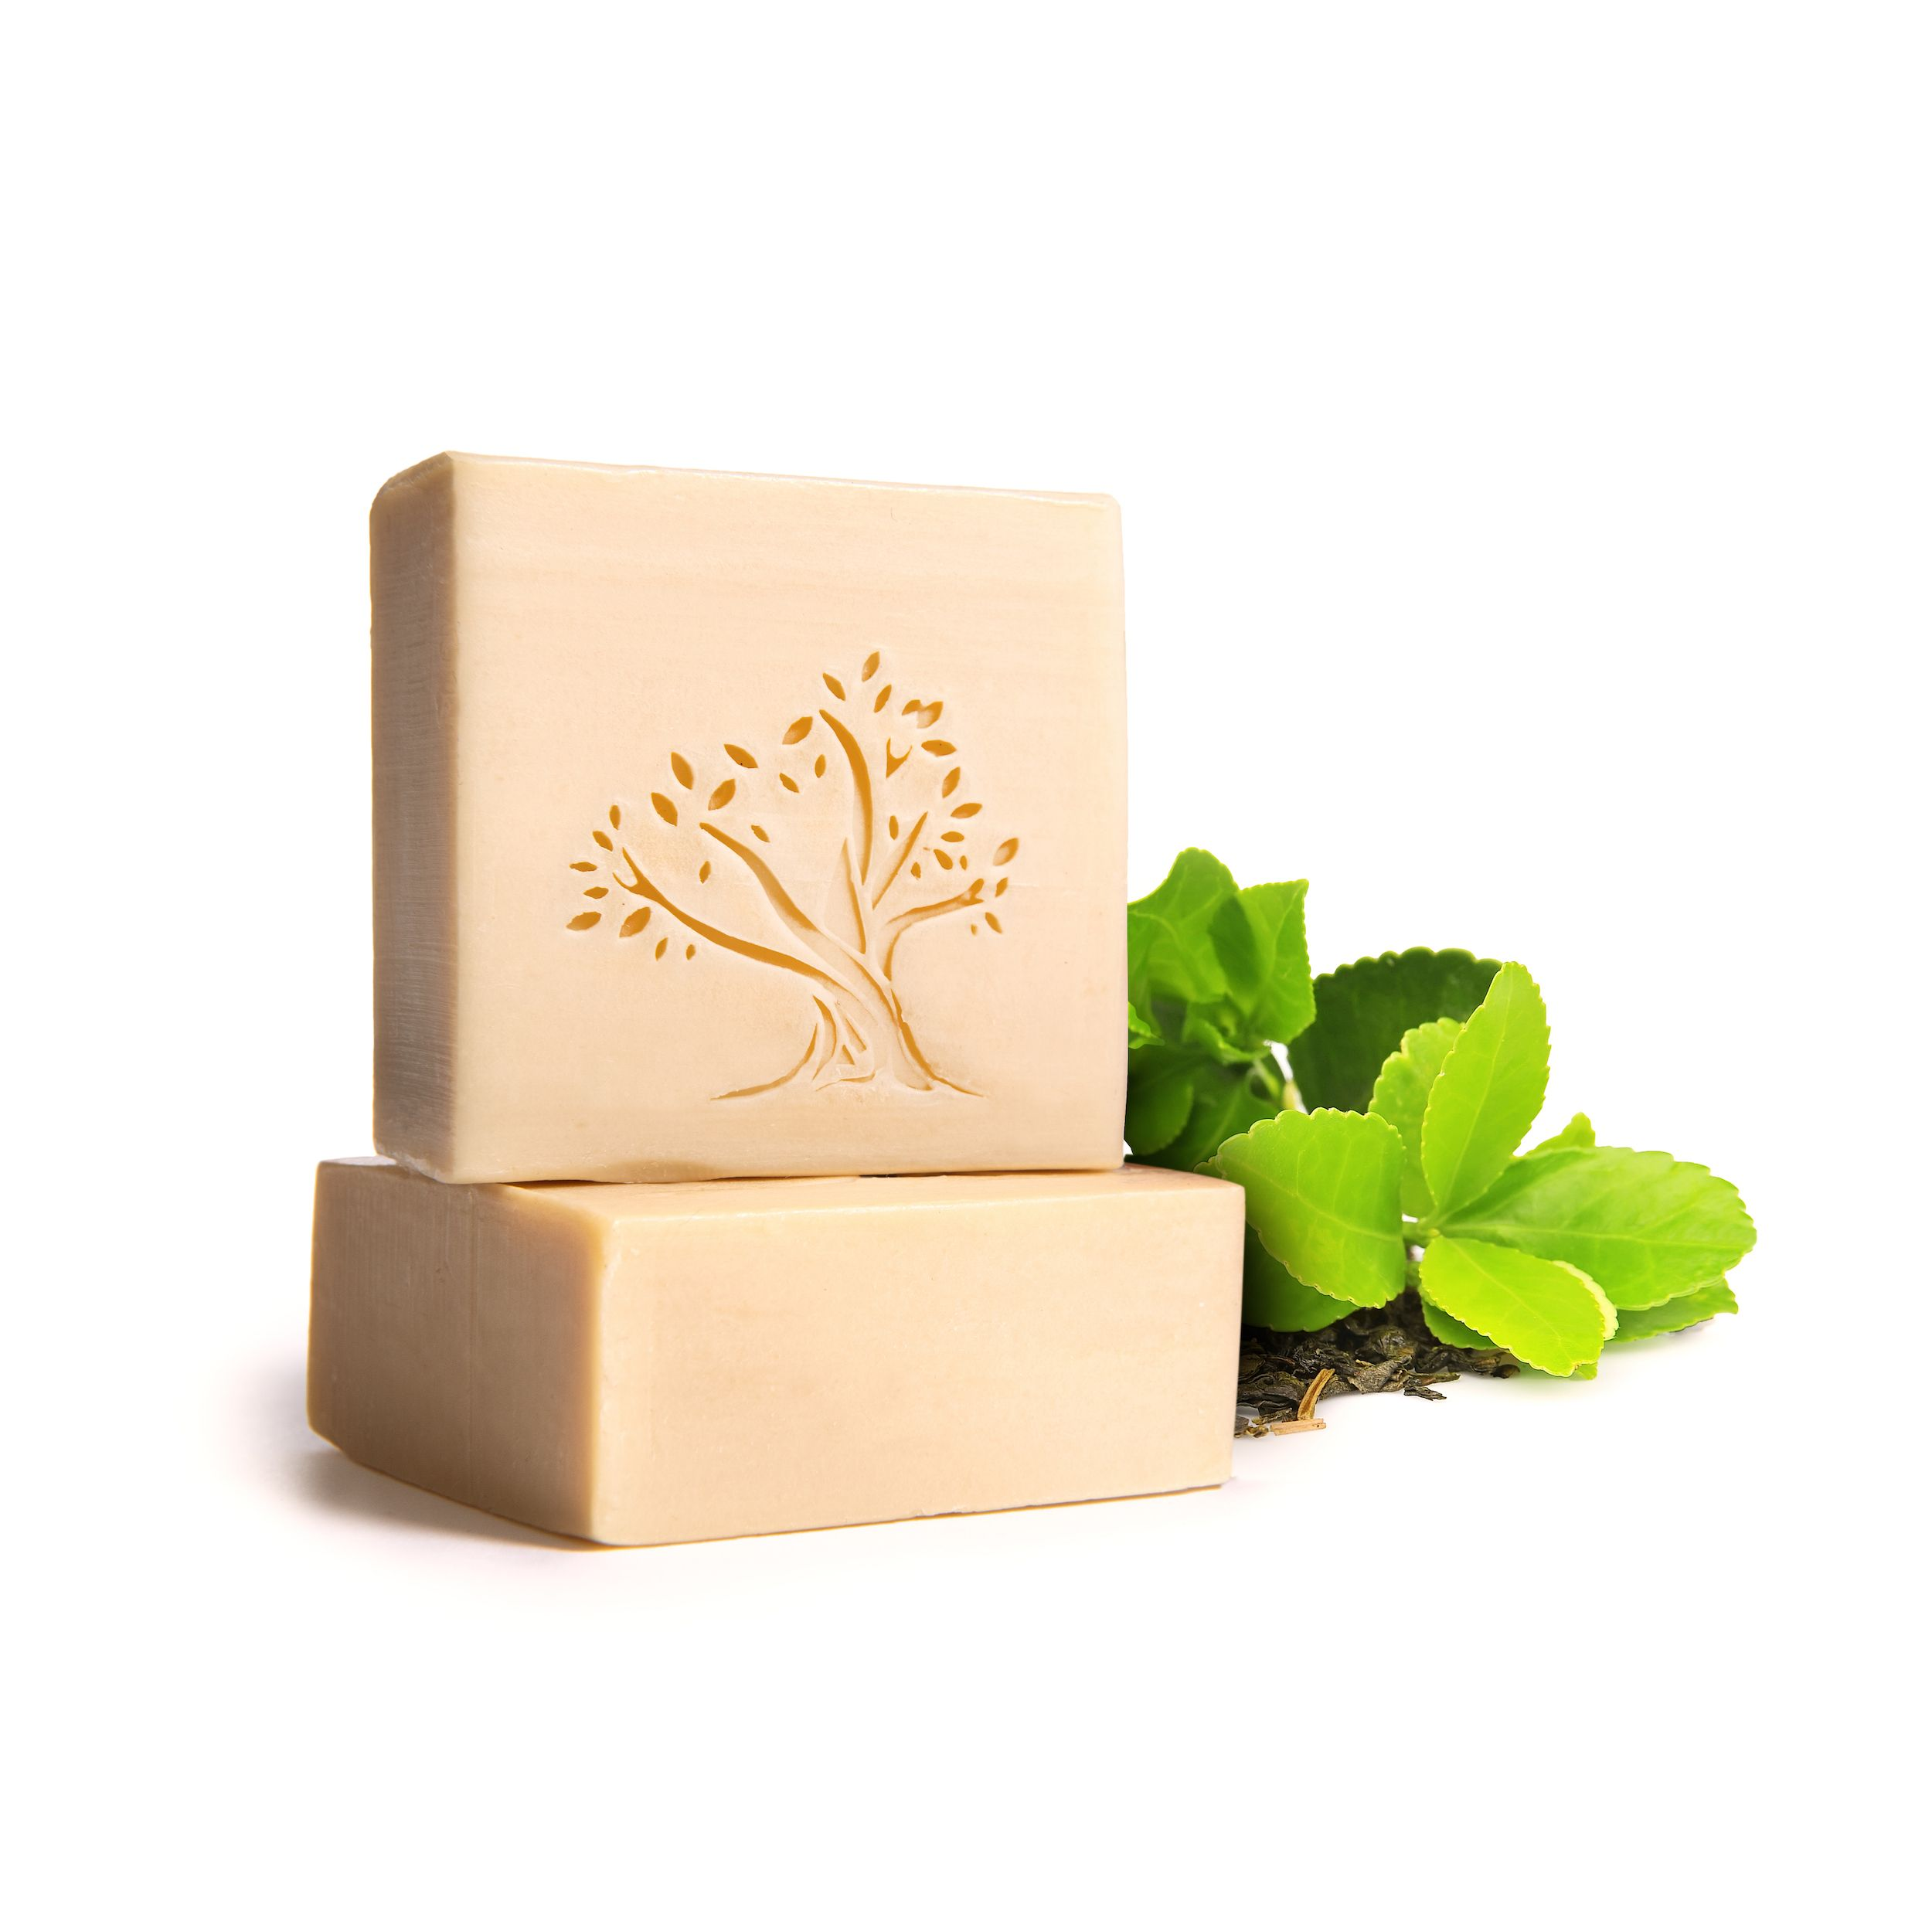 Le Joyau d'Olive - Luxury Pure Olive Oil Soap - Natural Handcrafted Bar for Face & Body - 1-Pack – Green Tea Oil Bath Bar